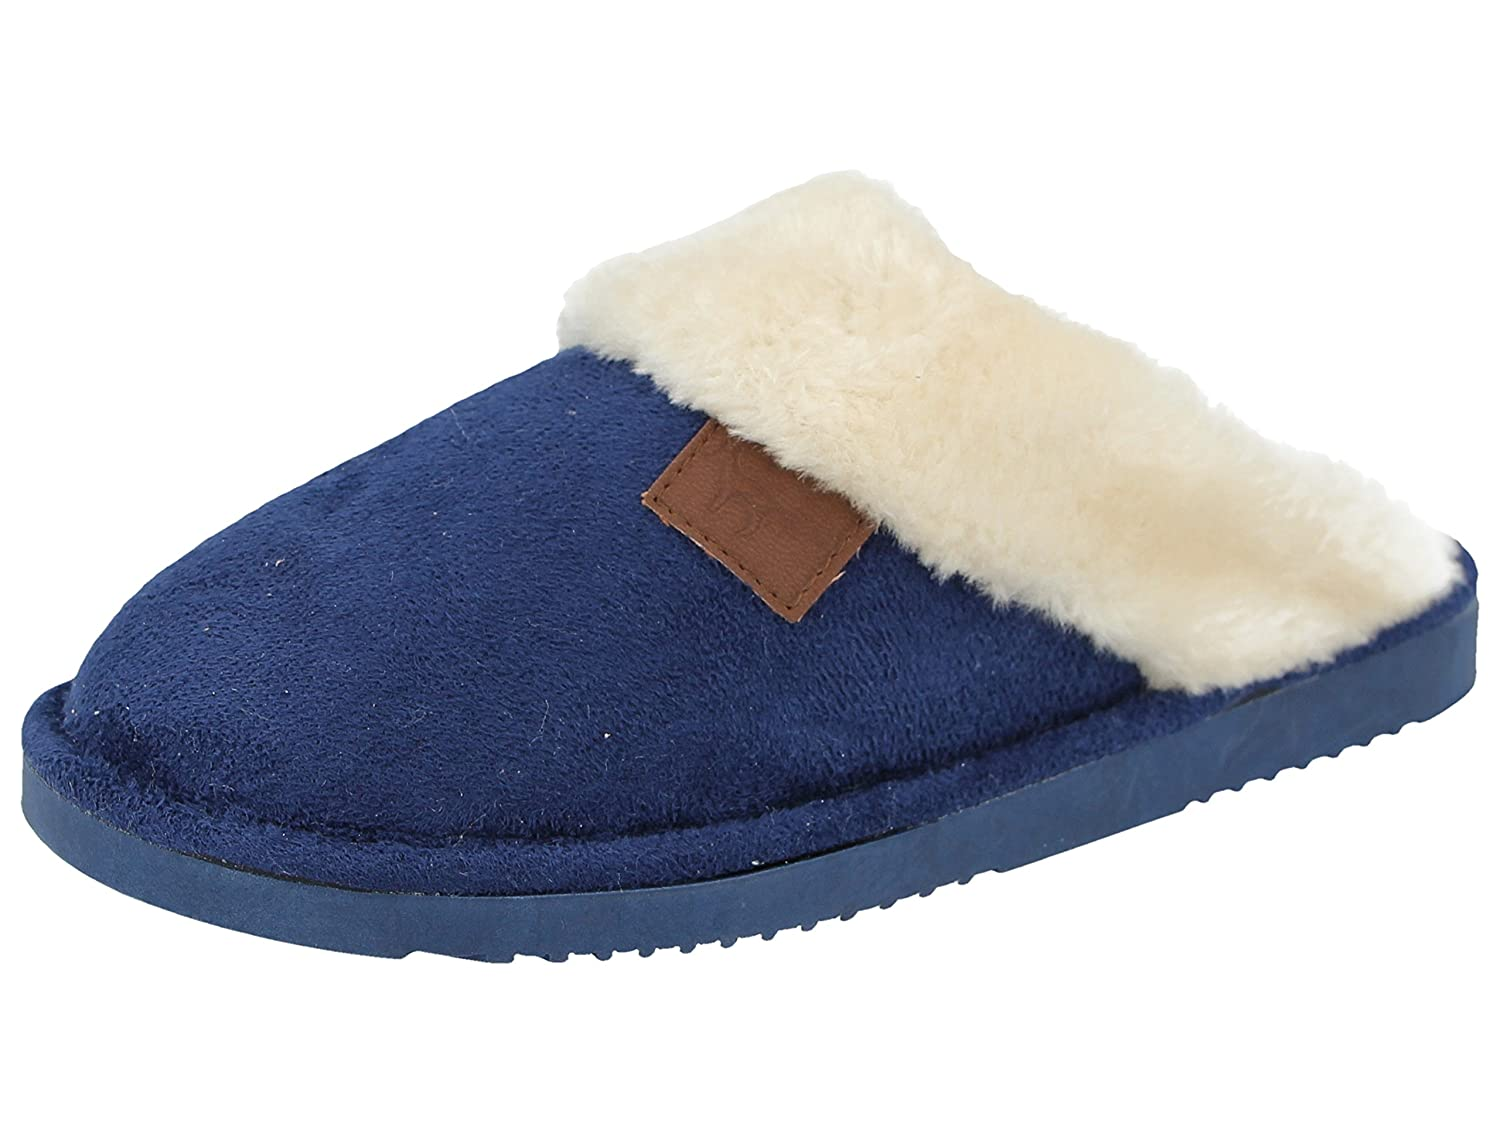 d4f9cf91a6 Ladies Wicklow Tartan Faux Fur Trim Slip On Mule Slippers Shoes Size 3-8:  Amazon.co.uk: Shoes & Bags